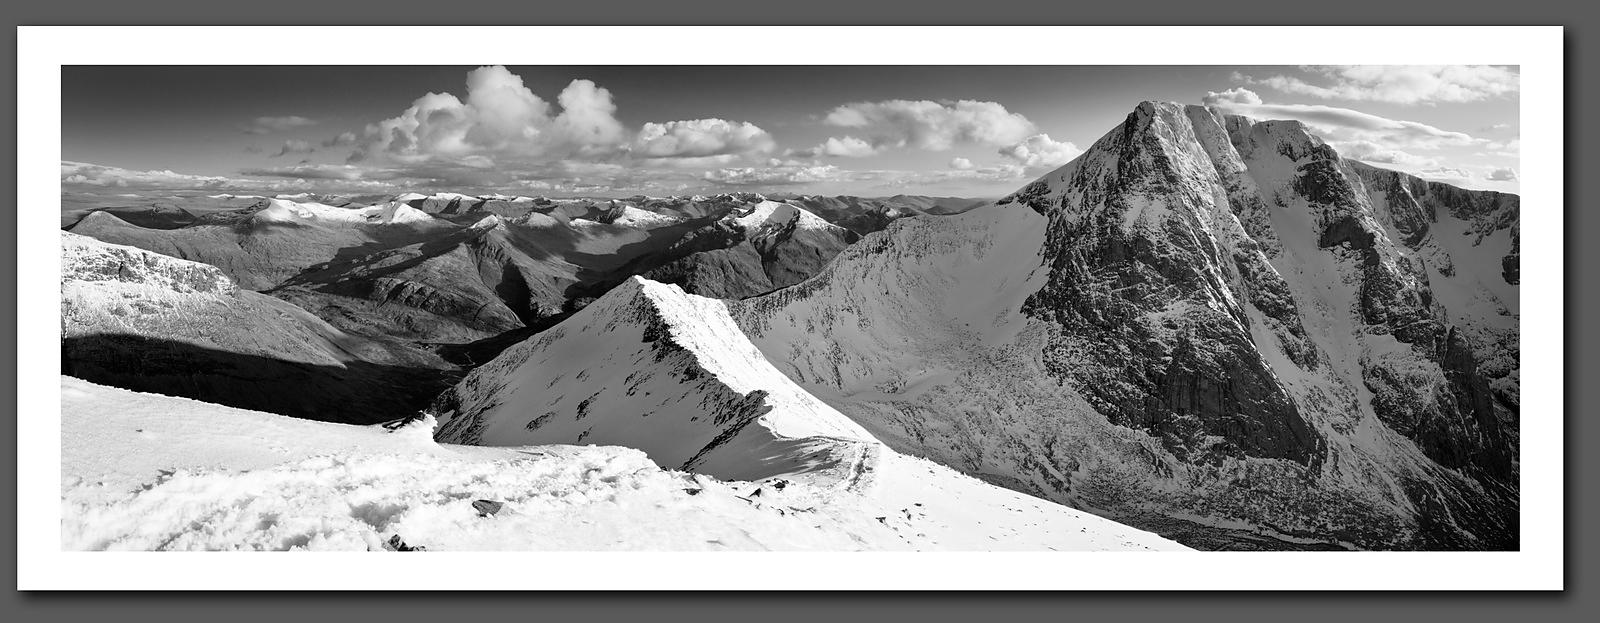 Ben Nevis North Face from the Carn Mor Dearg  Black and White Print (BP3160)